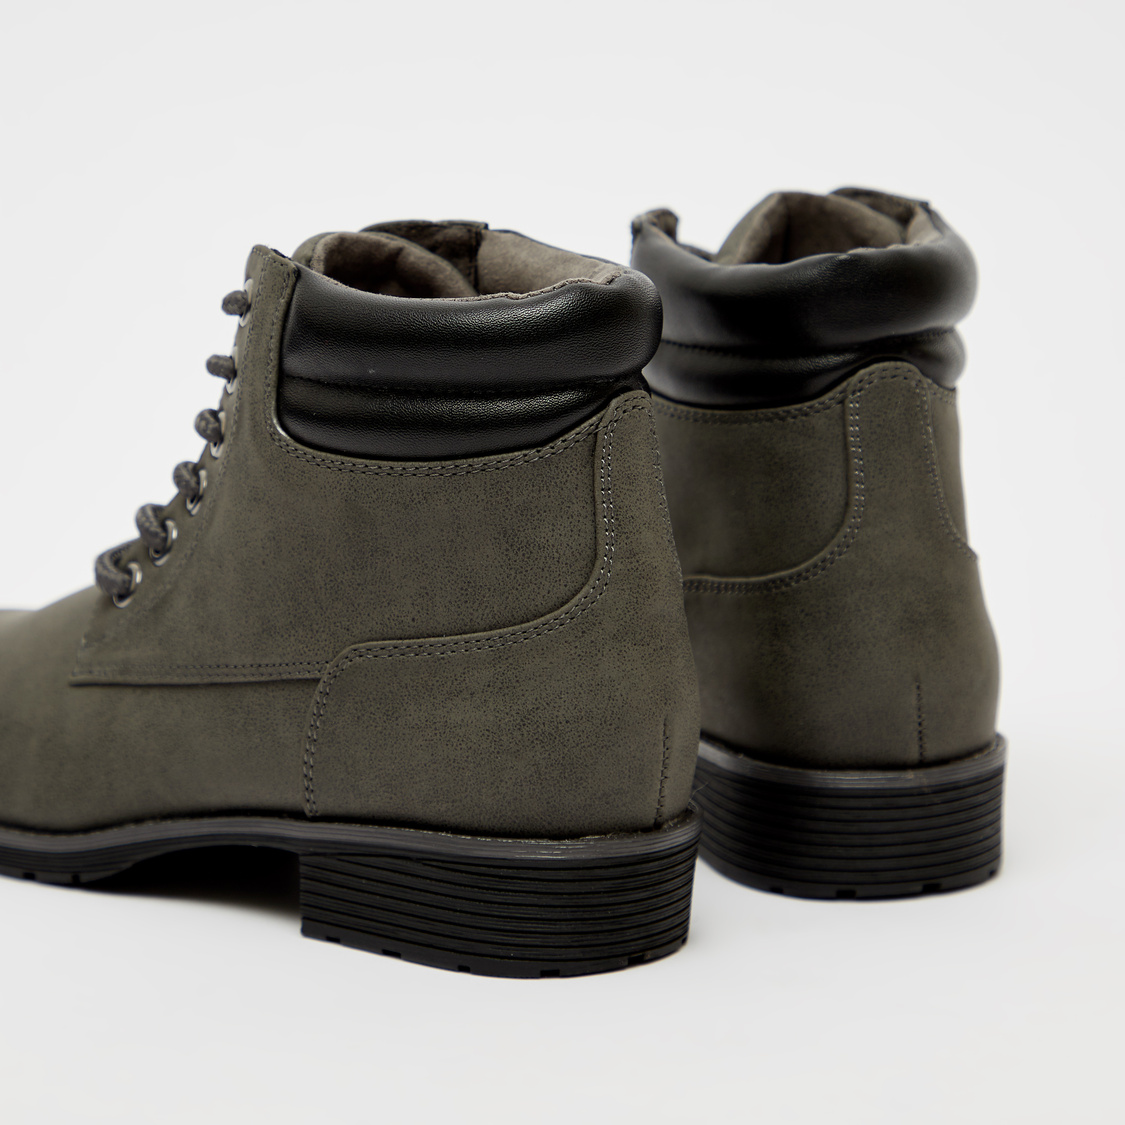 Textured Boots with Lace-Up Closure